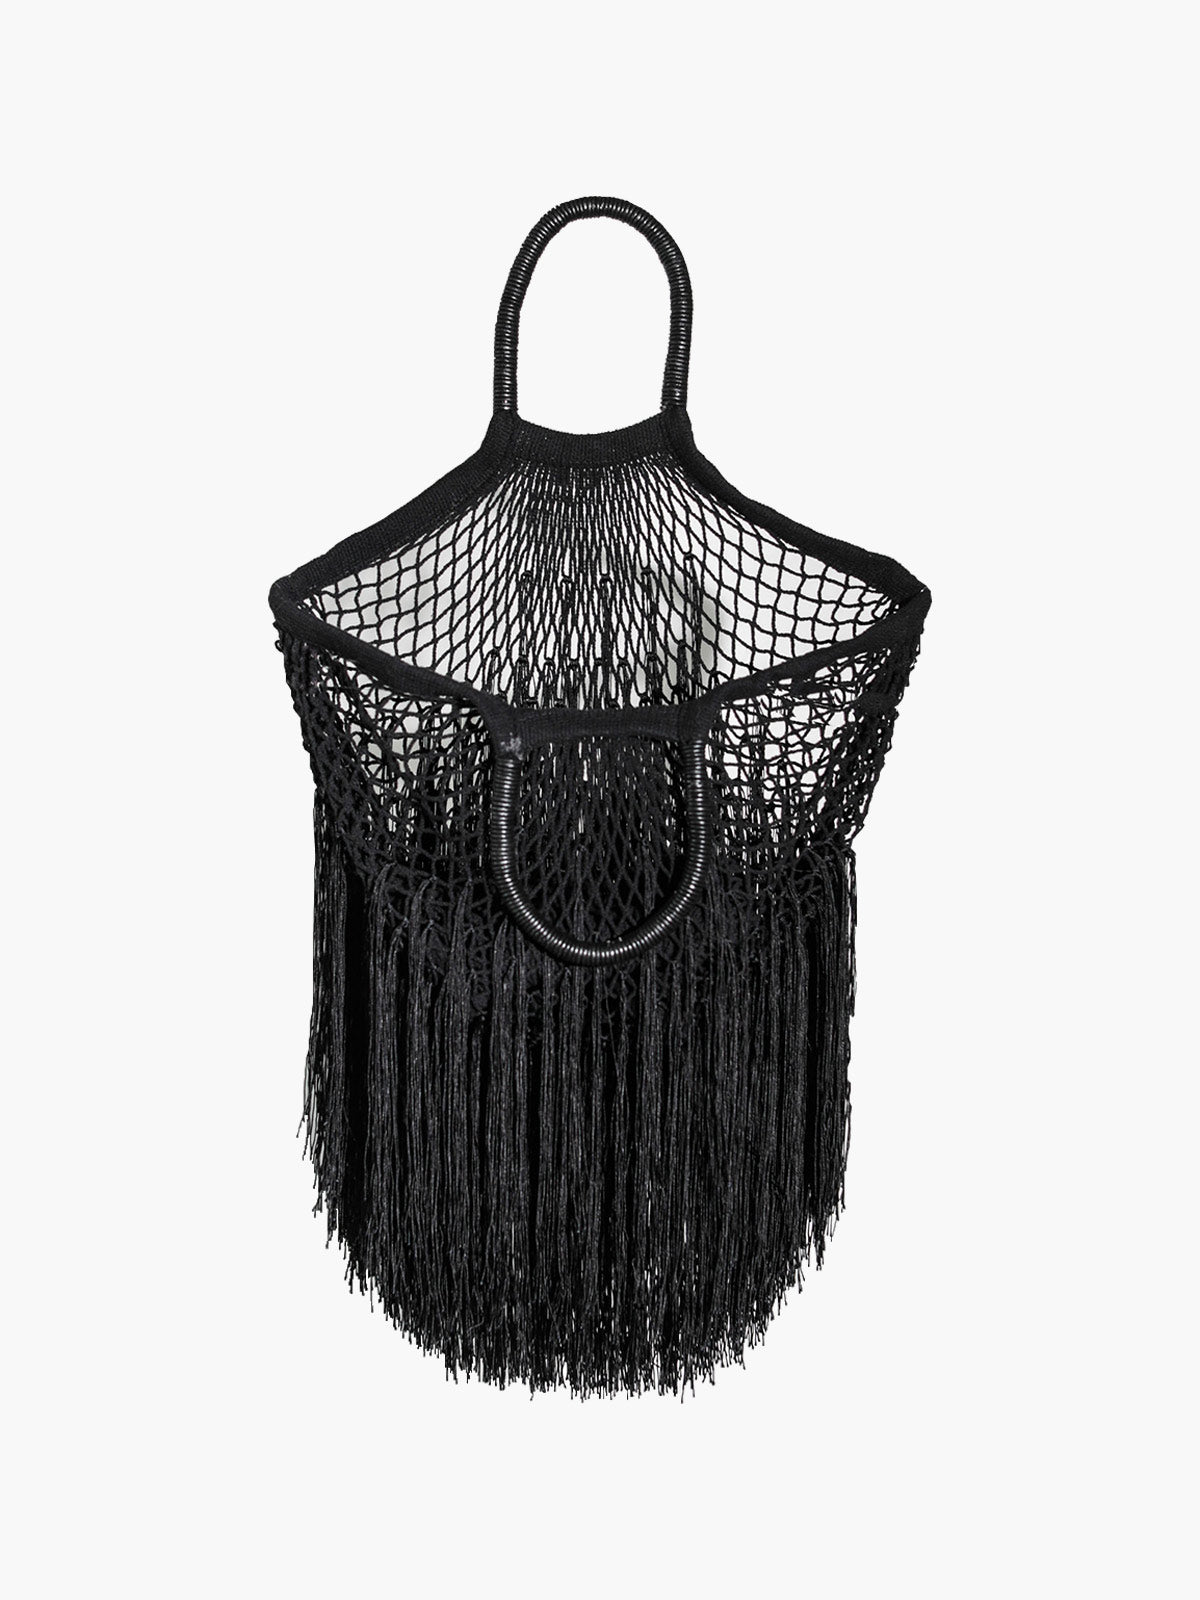 Large Fringe Tote | Black Large Fringe Tote | Black